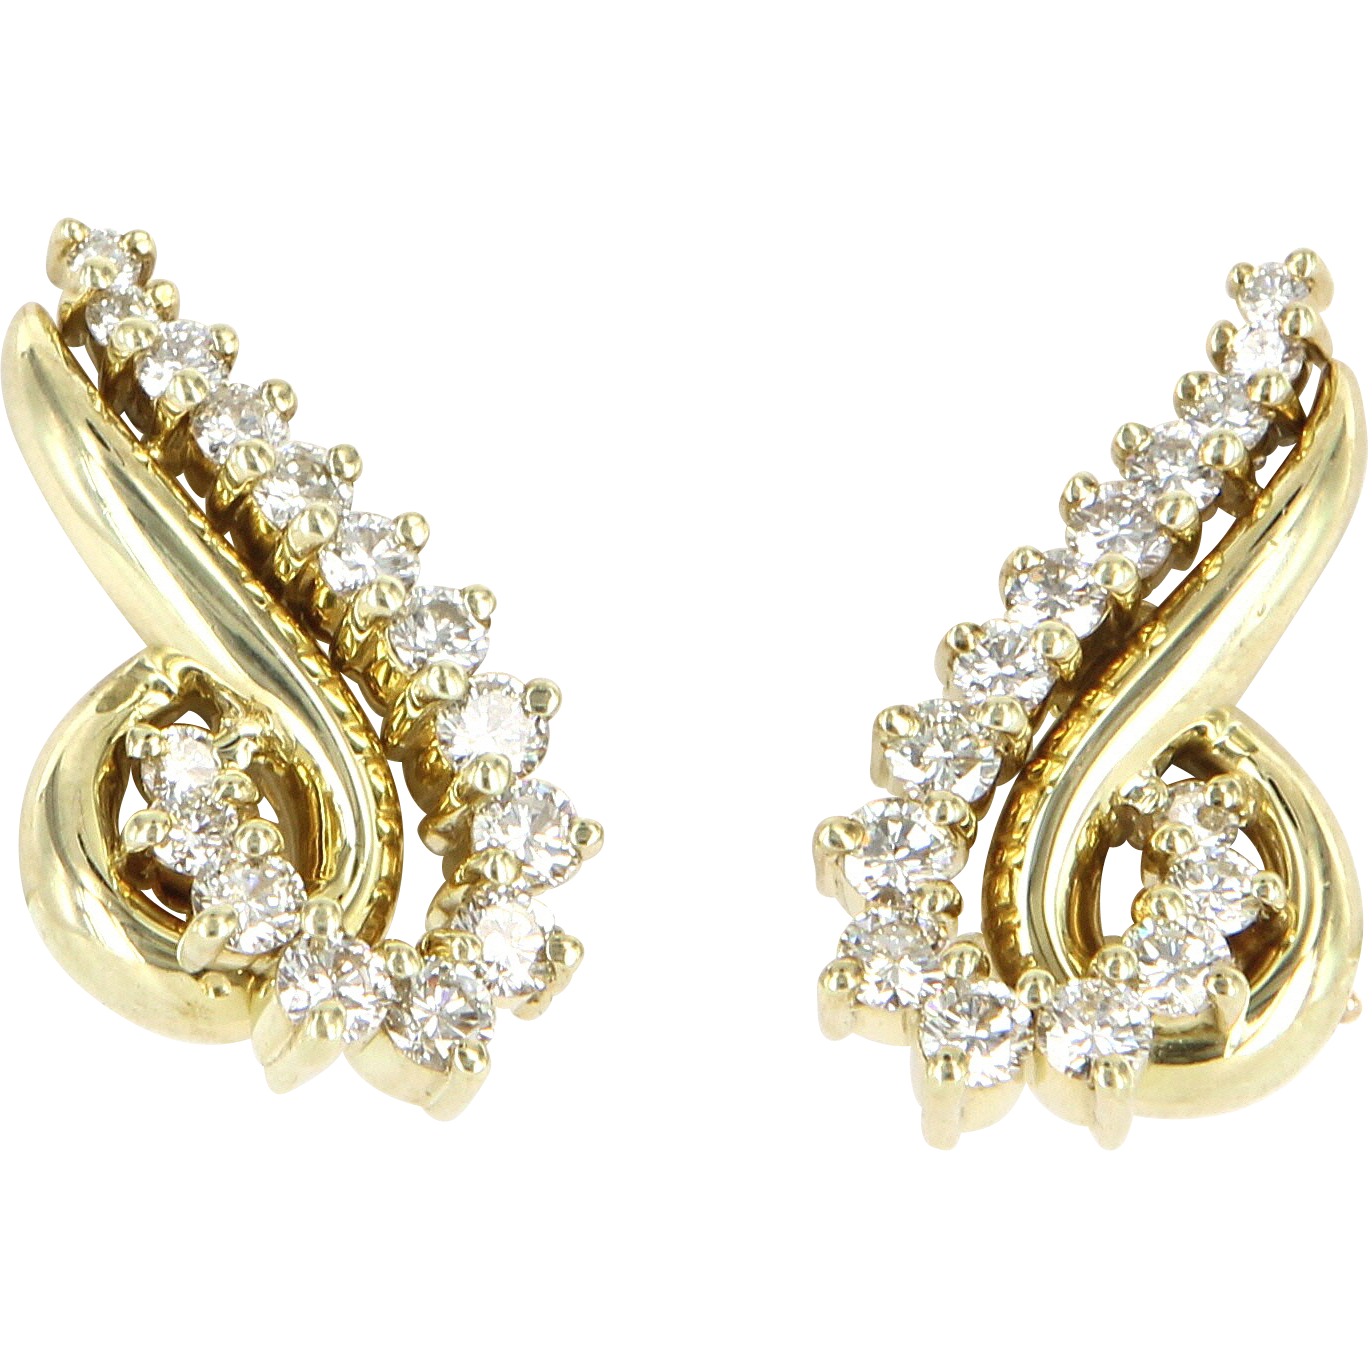 Vintage Jose Hess Diamond Clip Cocktail Earrings 14 Karat Gold Designer Jewelry